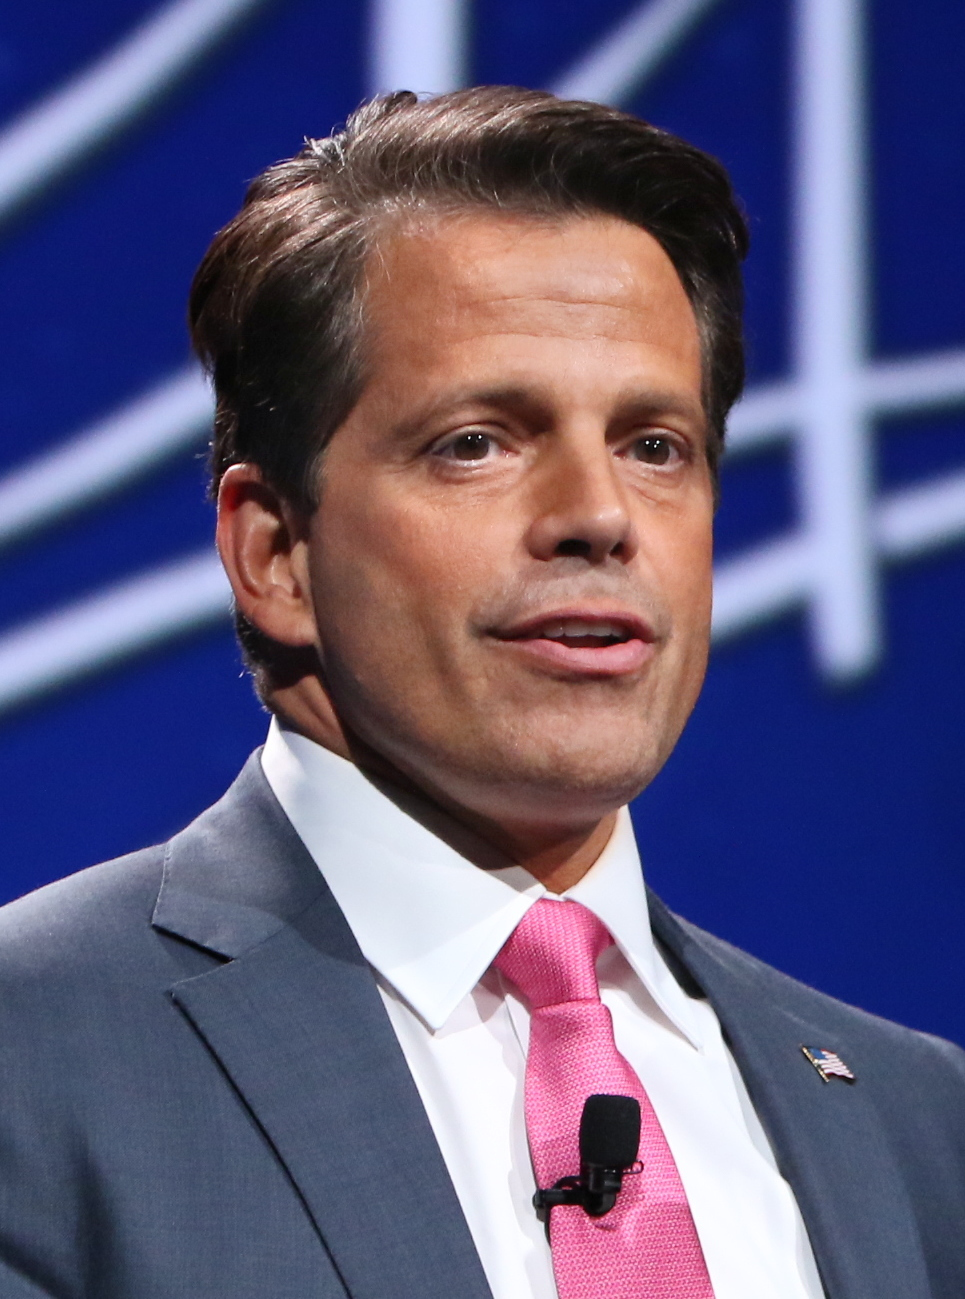 Anthony Scaramucci at SALT Conference 2016 (cropped).jpg